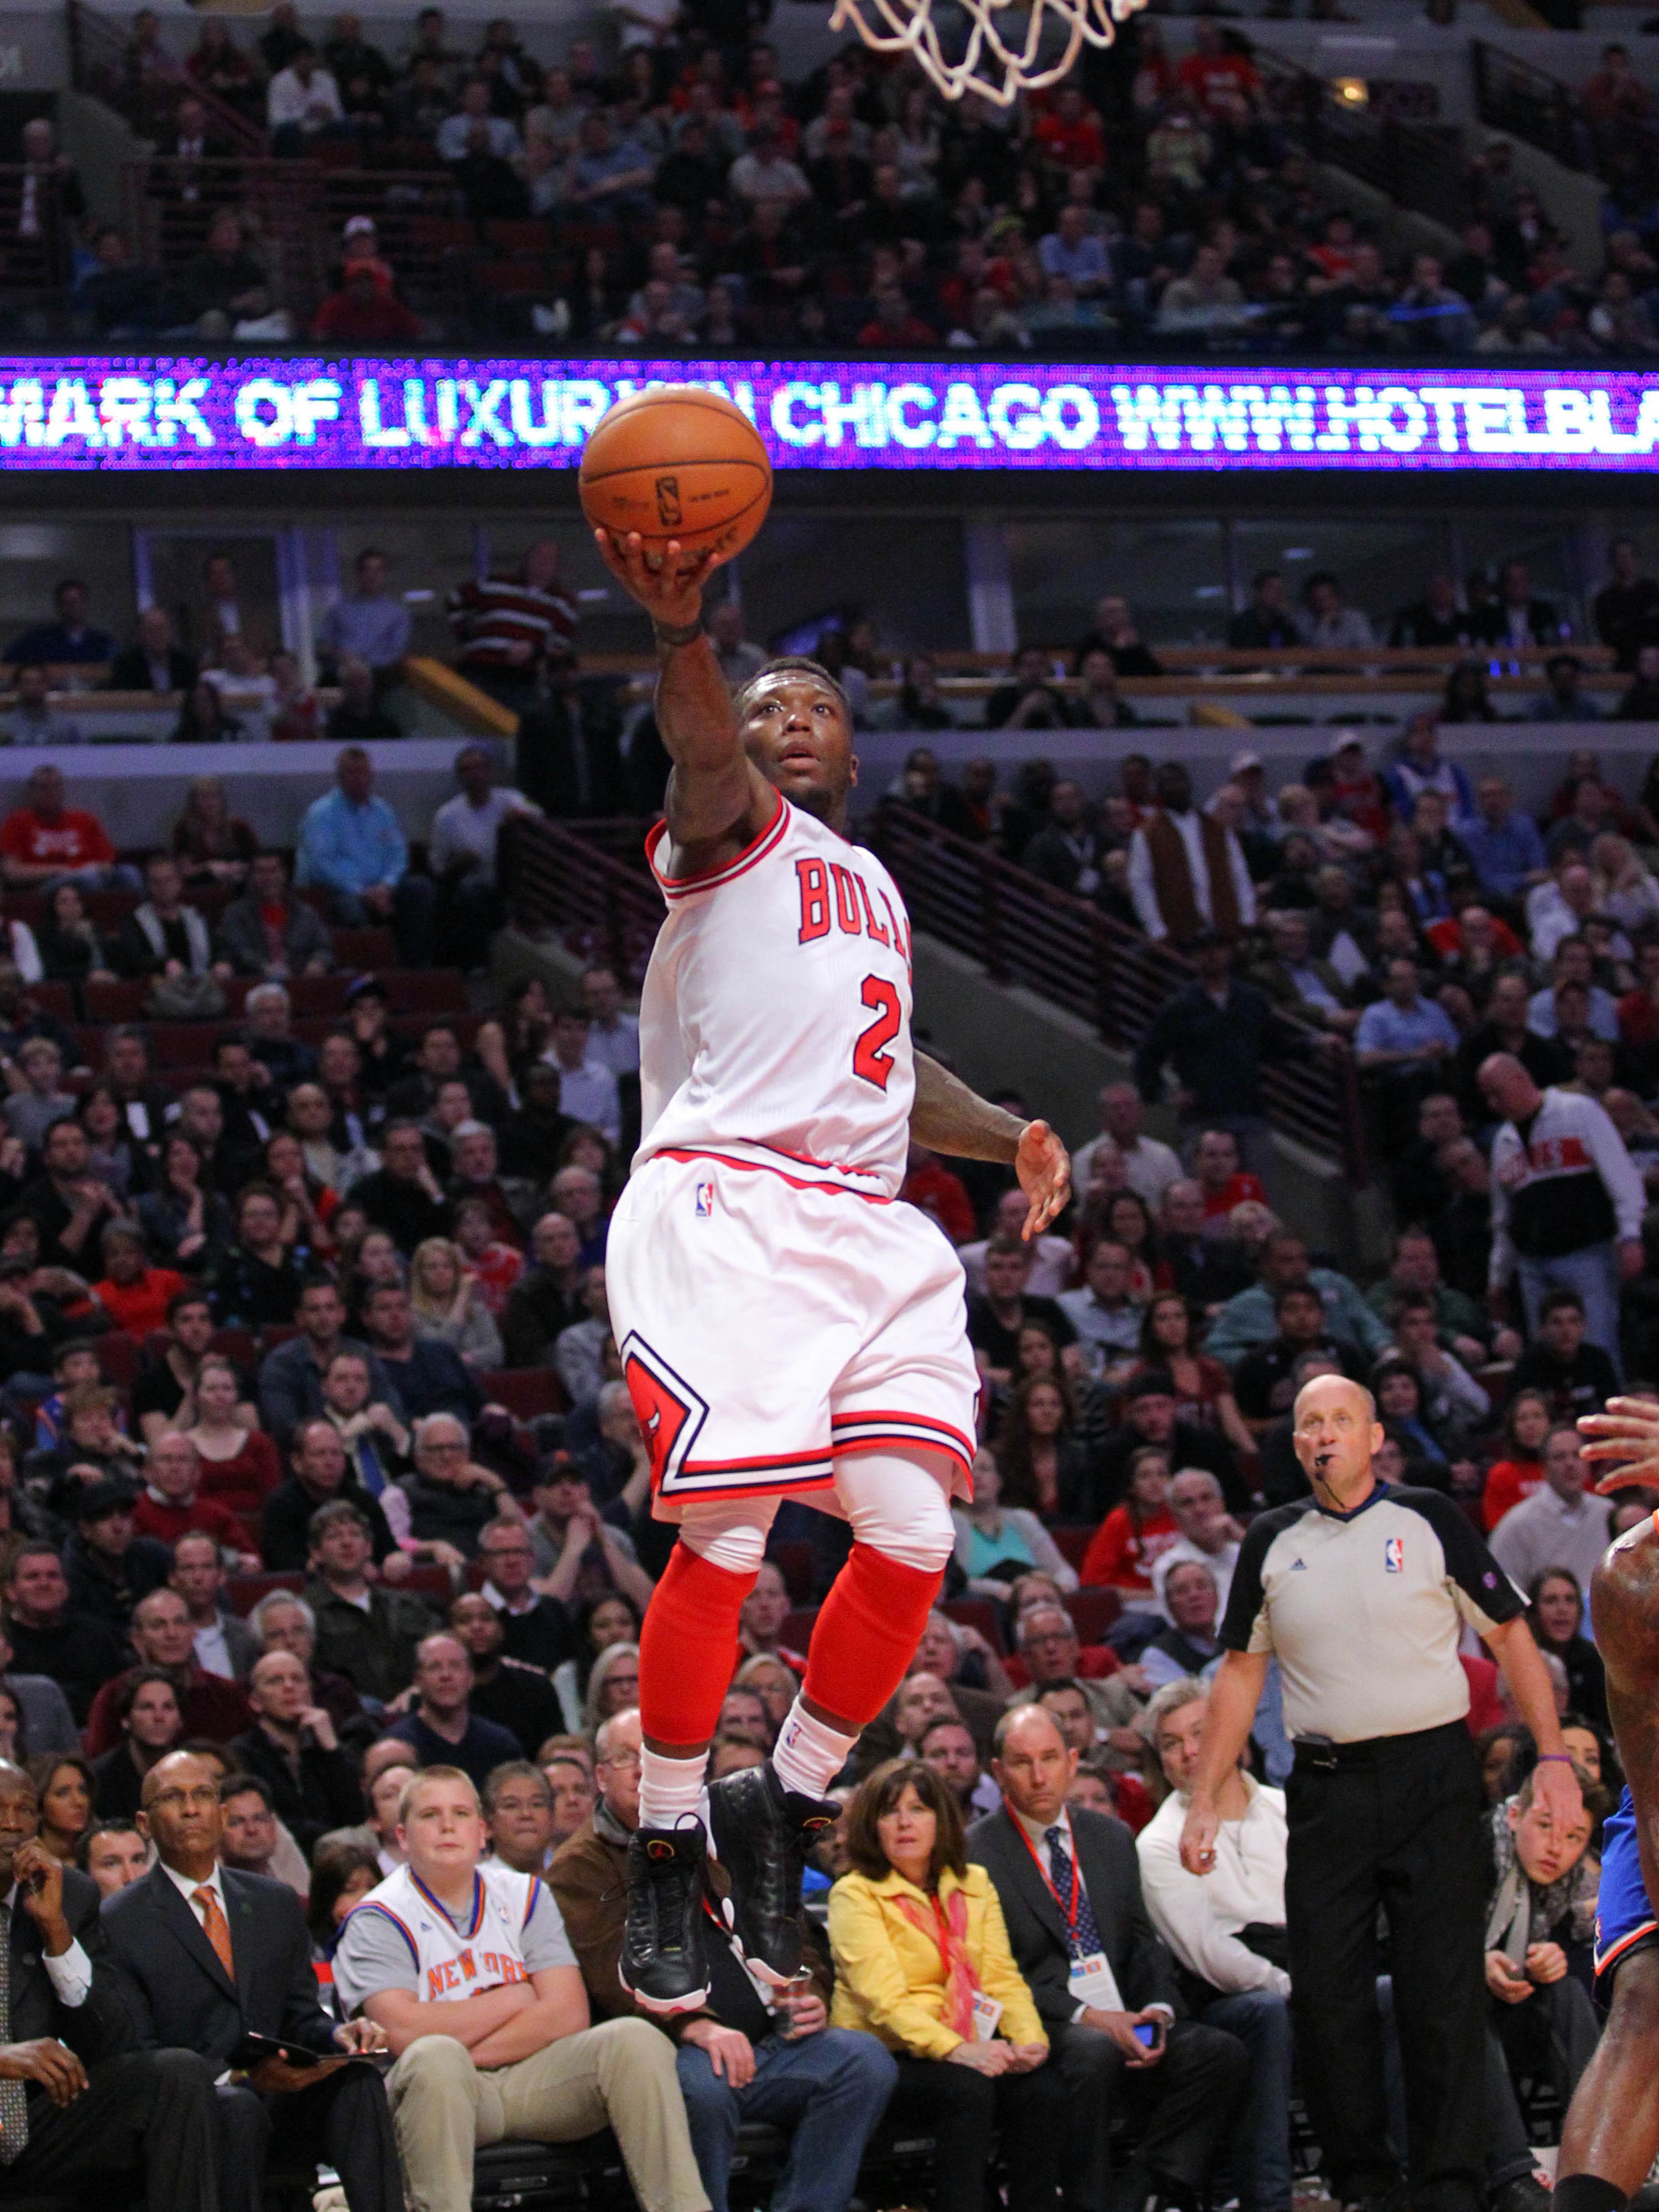 Nate Robinson would consider joining Knicks again, agent says